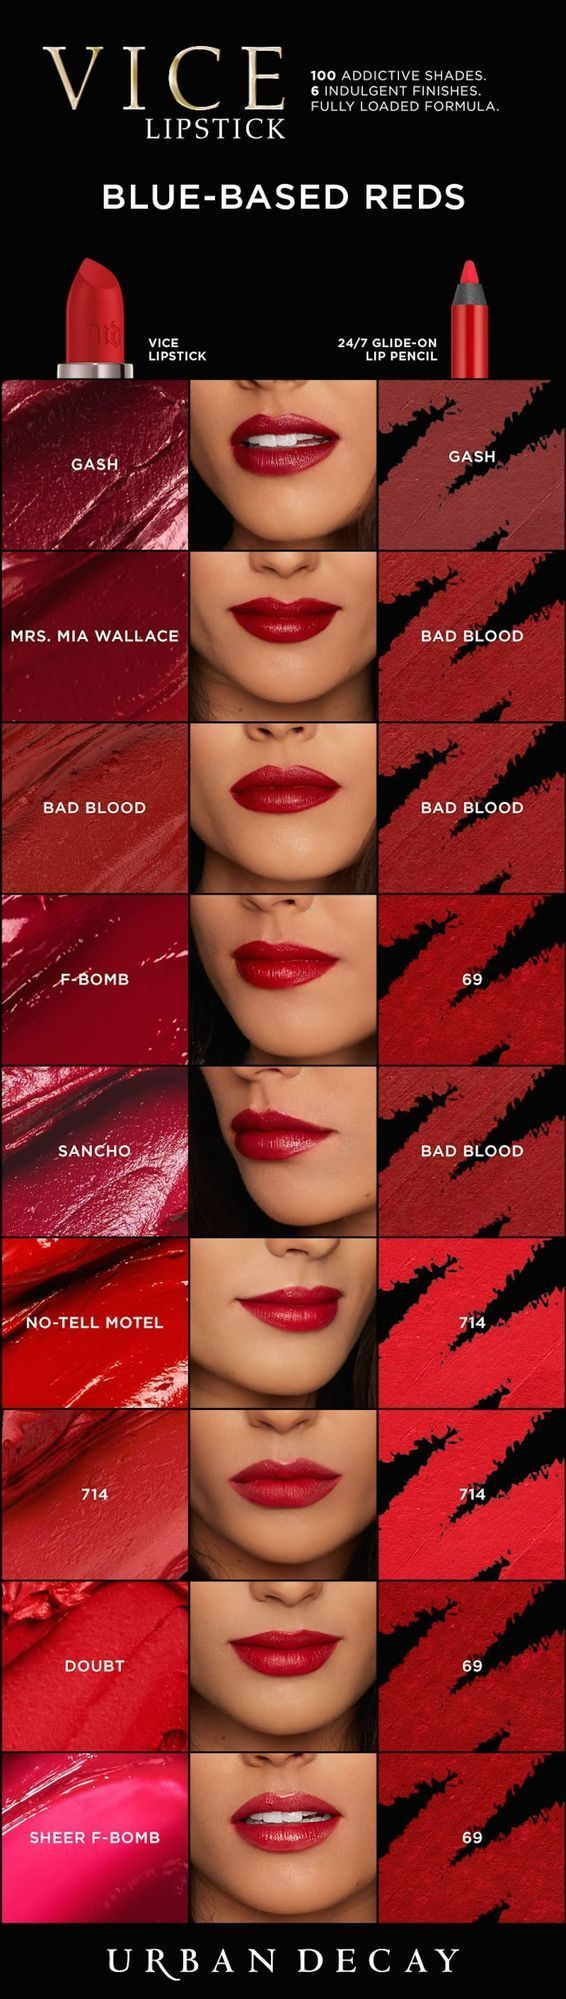 Vice Lipstick: Blue-Based Reds ~ note to self: I really like Gash and Sancho!